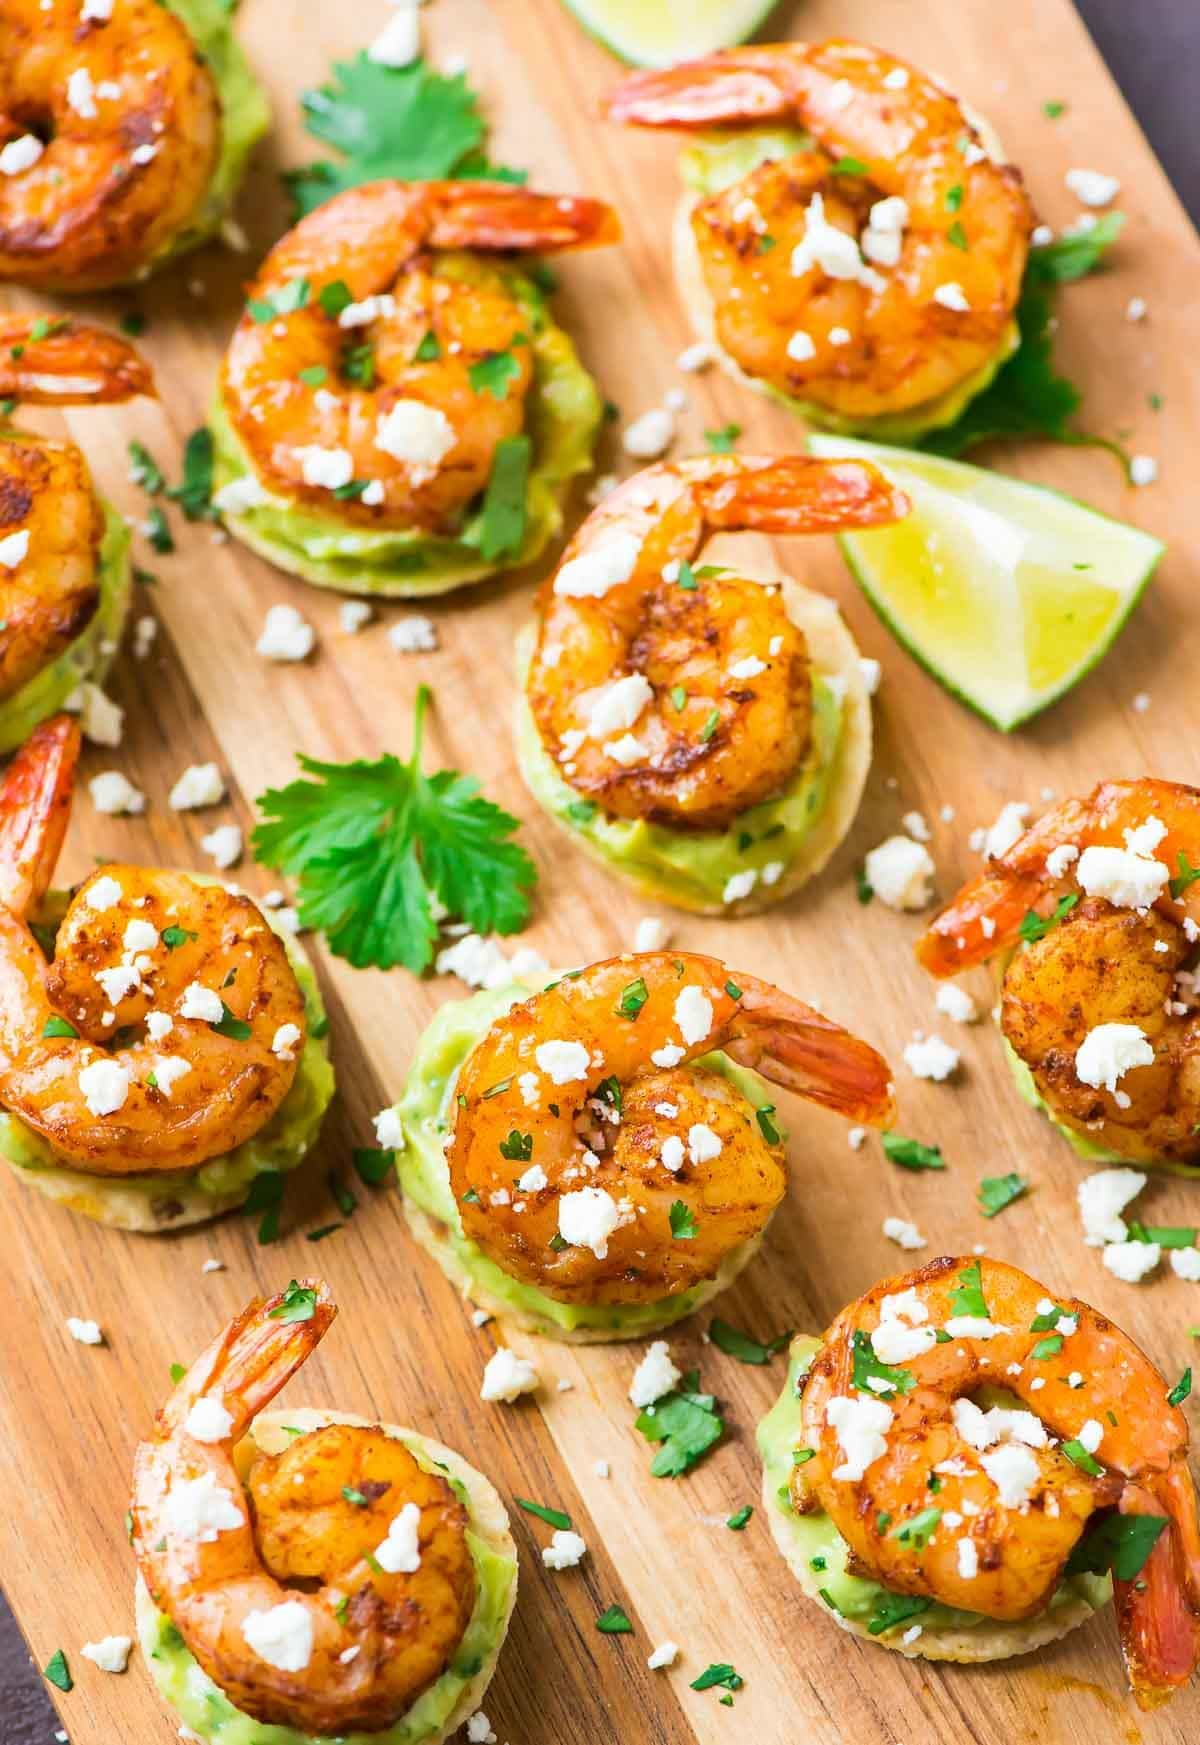 Spicy Guacamole Shrimp Bites. FAVORITE appetizer! Tortilla chips topped with creamy avocado, juicy roasted shrimp, and a squeeze of lime. Recipe at wellplated.com | @wellplated